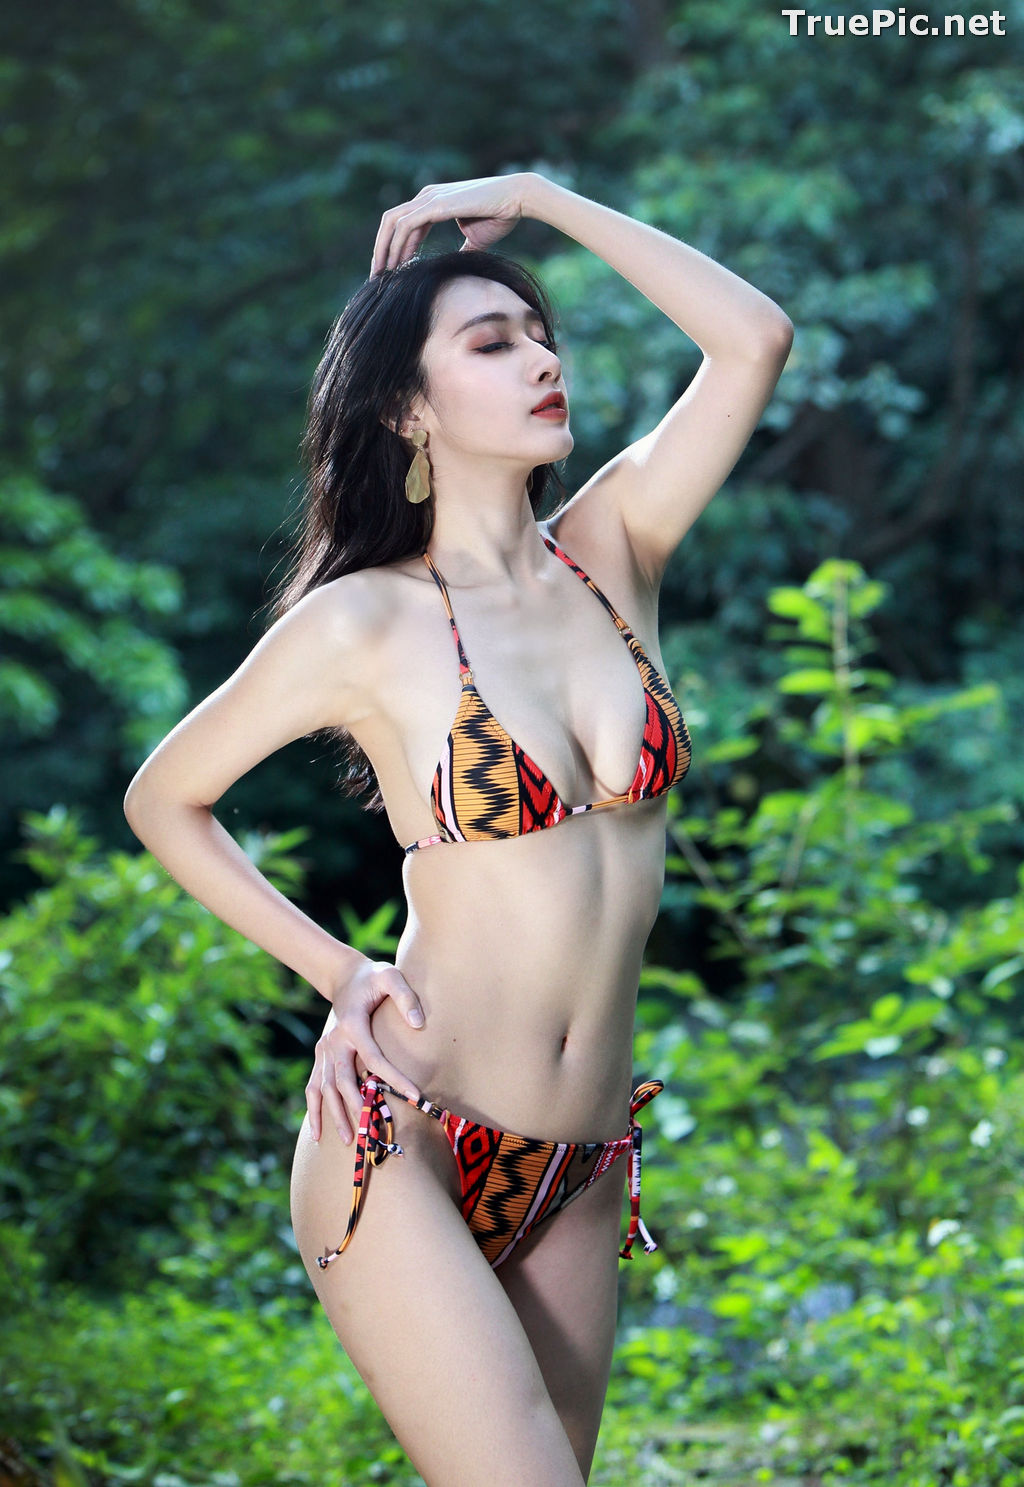 Image Taiwanese Model - 段璟樂 - Lovely and Sexy Bikini Baby - TruePic.net - Picture-2